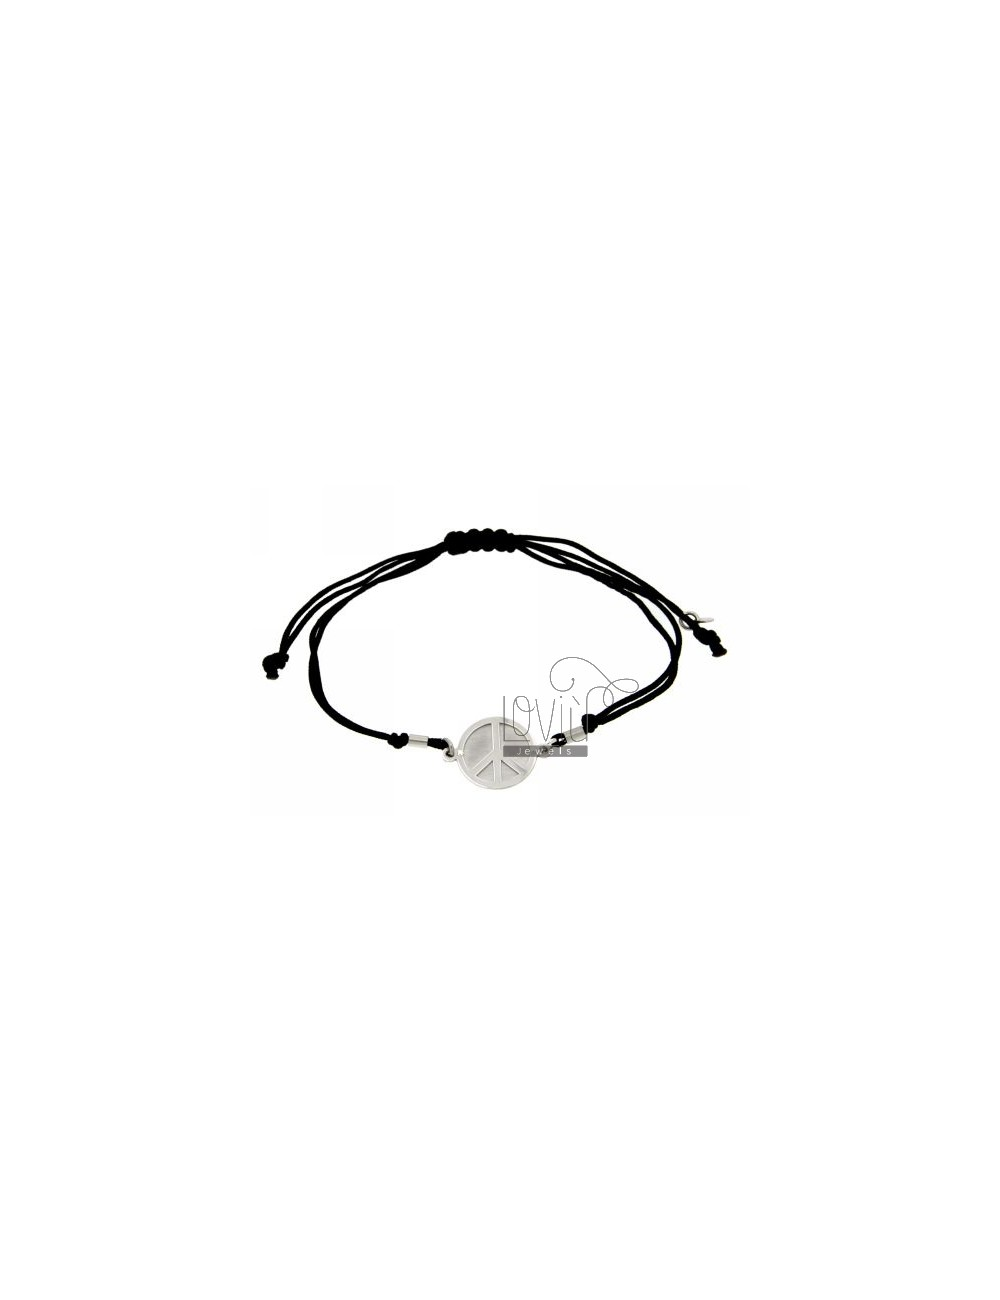 STRING BRACELET AND NECKLACE WITH ROUND SYMBOL OF PEACE SILVER RHODIUM 925